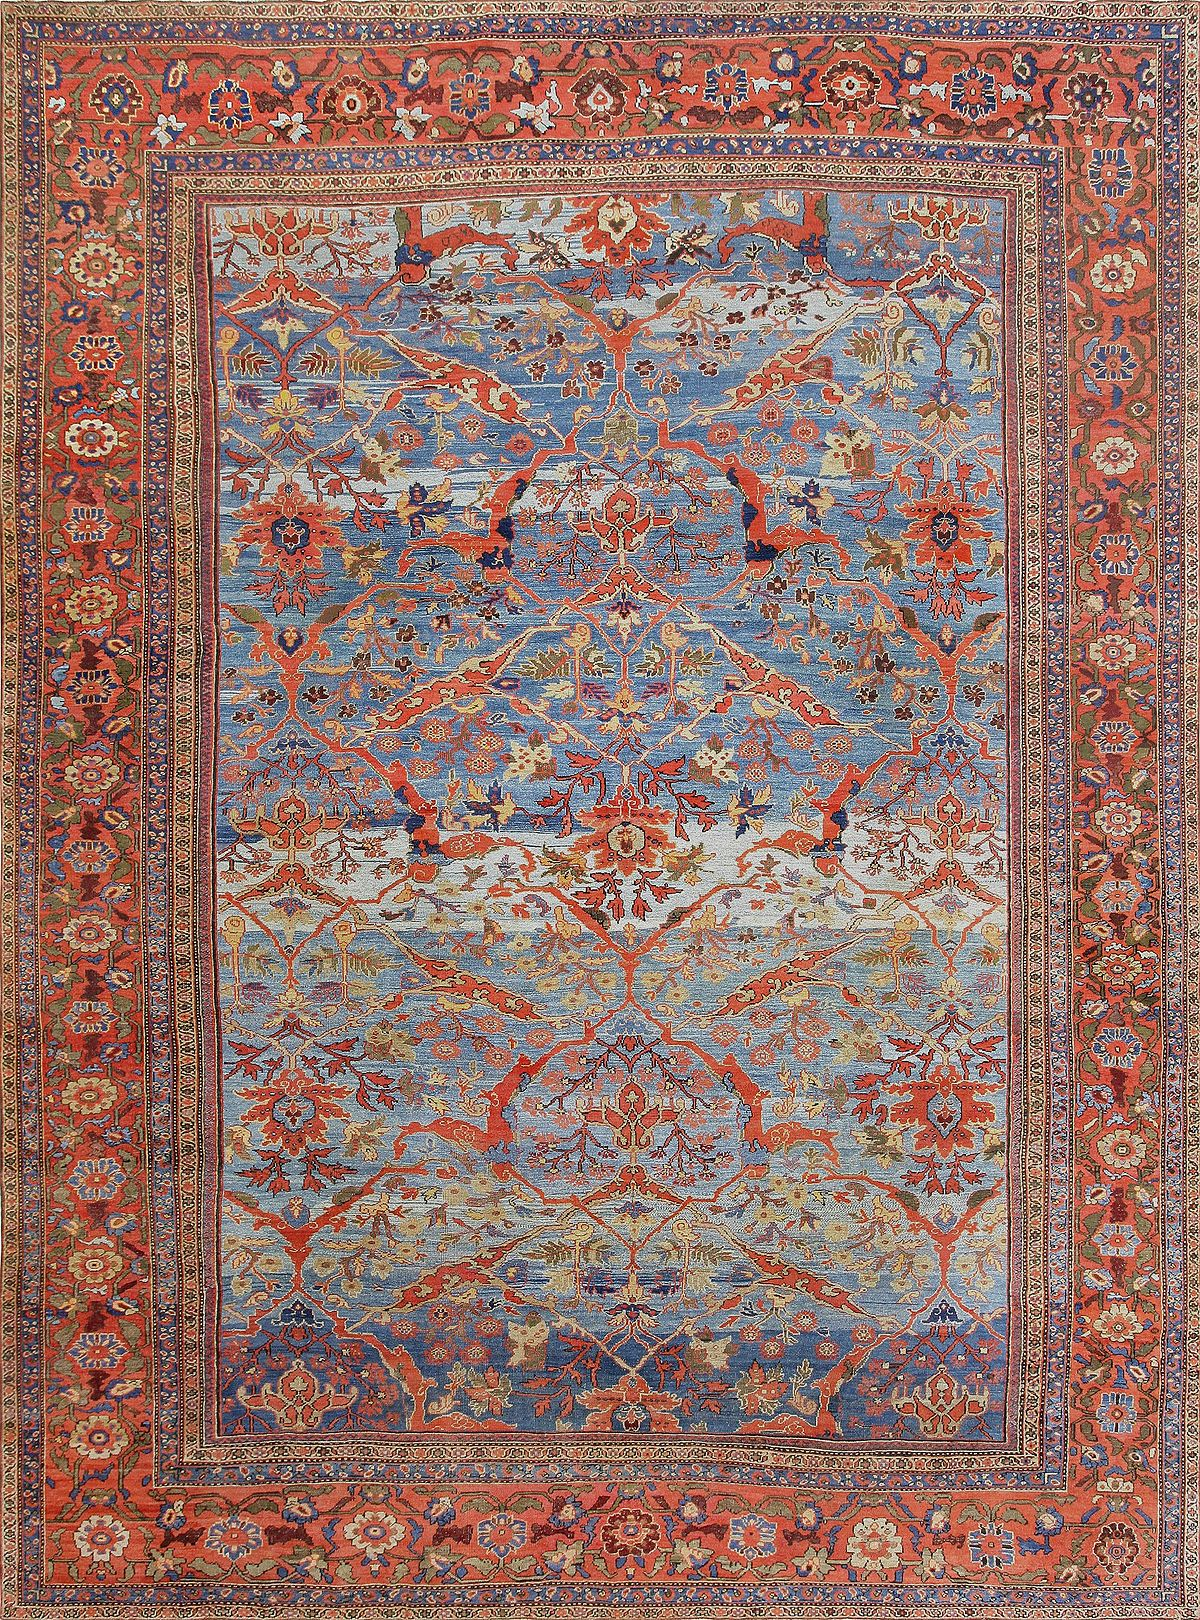 Rugs And Carpets Sultanabad Rugs And Carpets Wikipedia